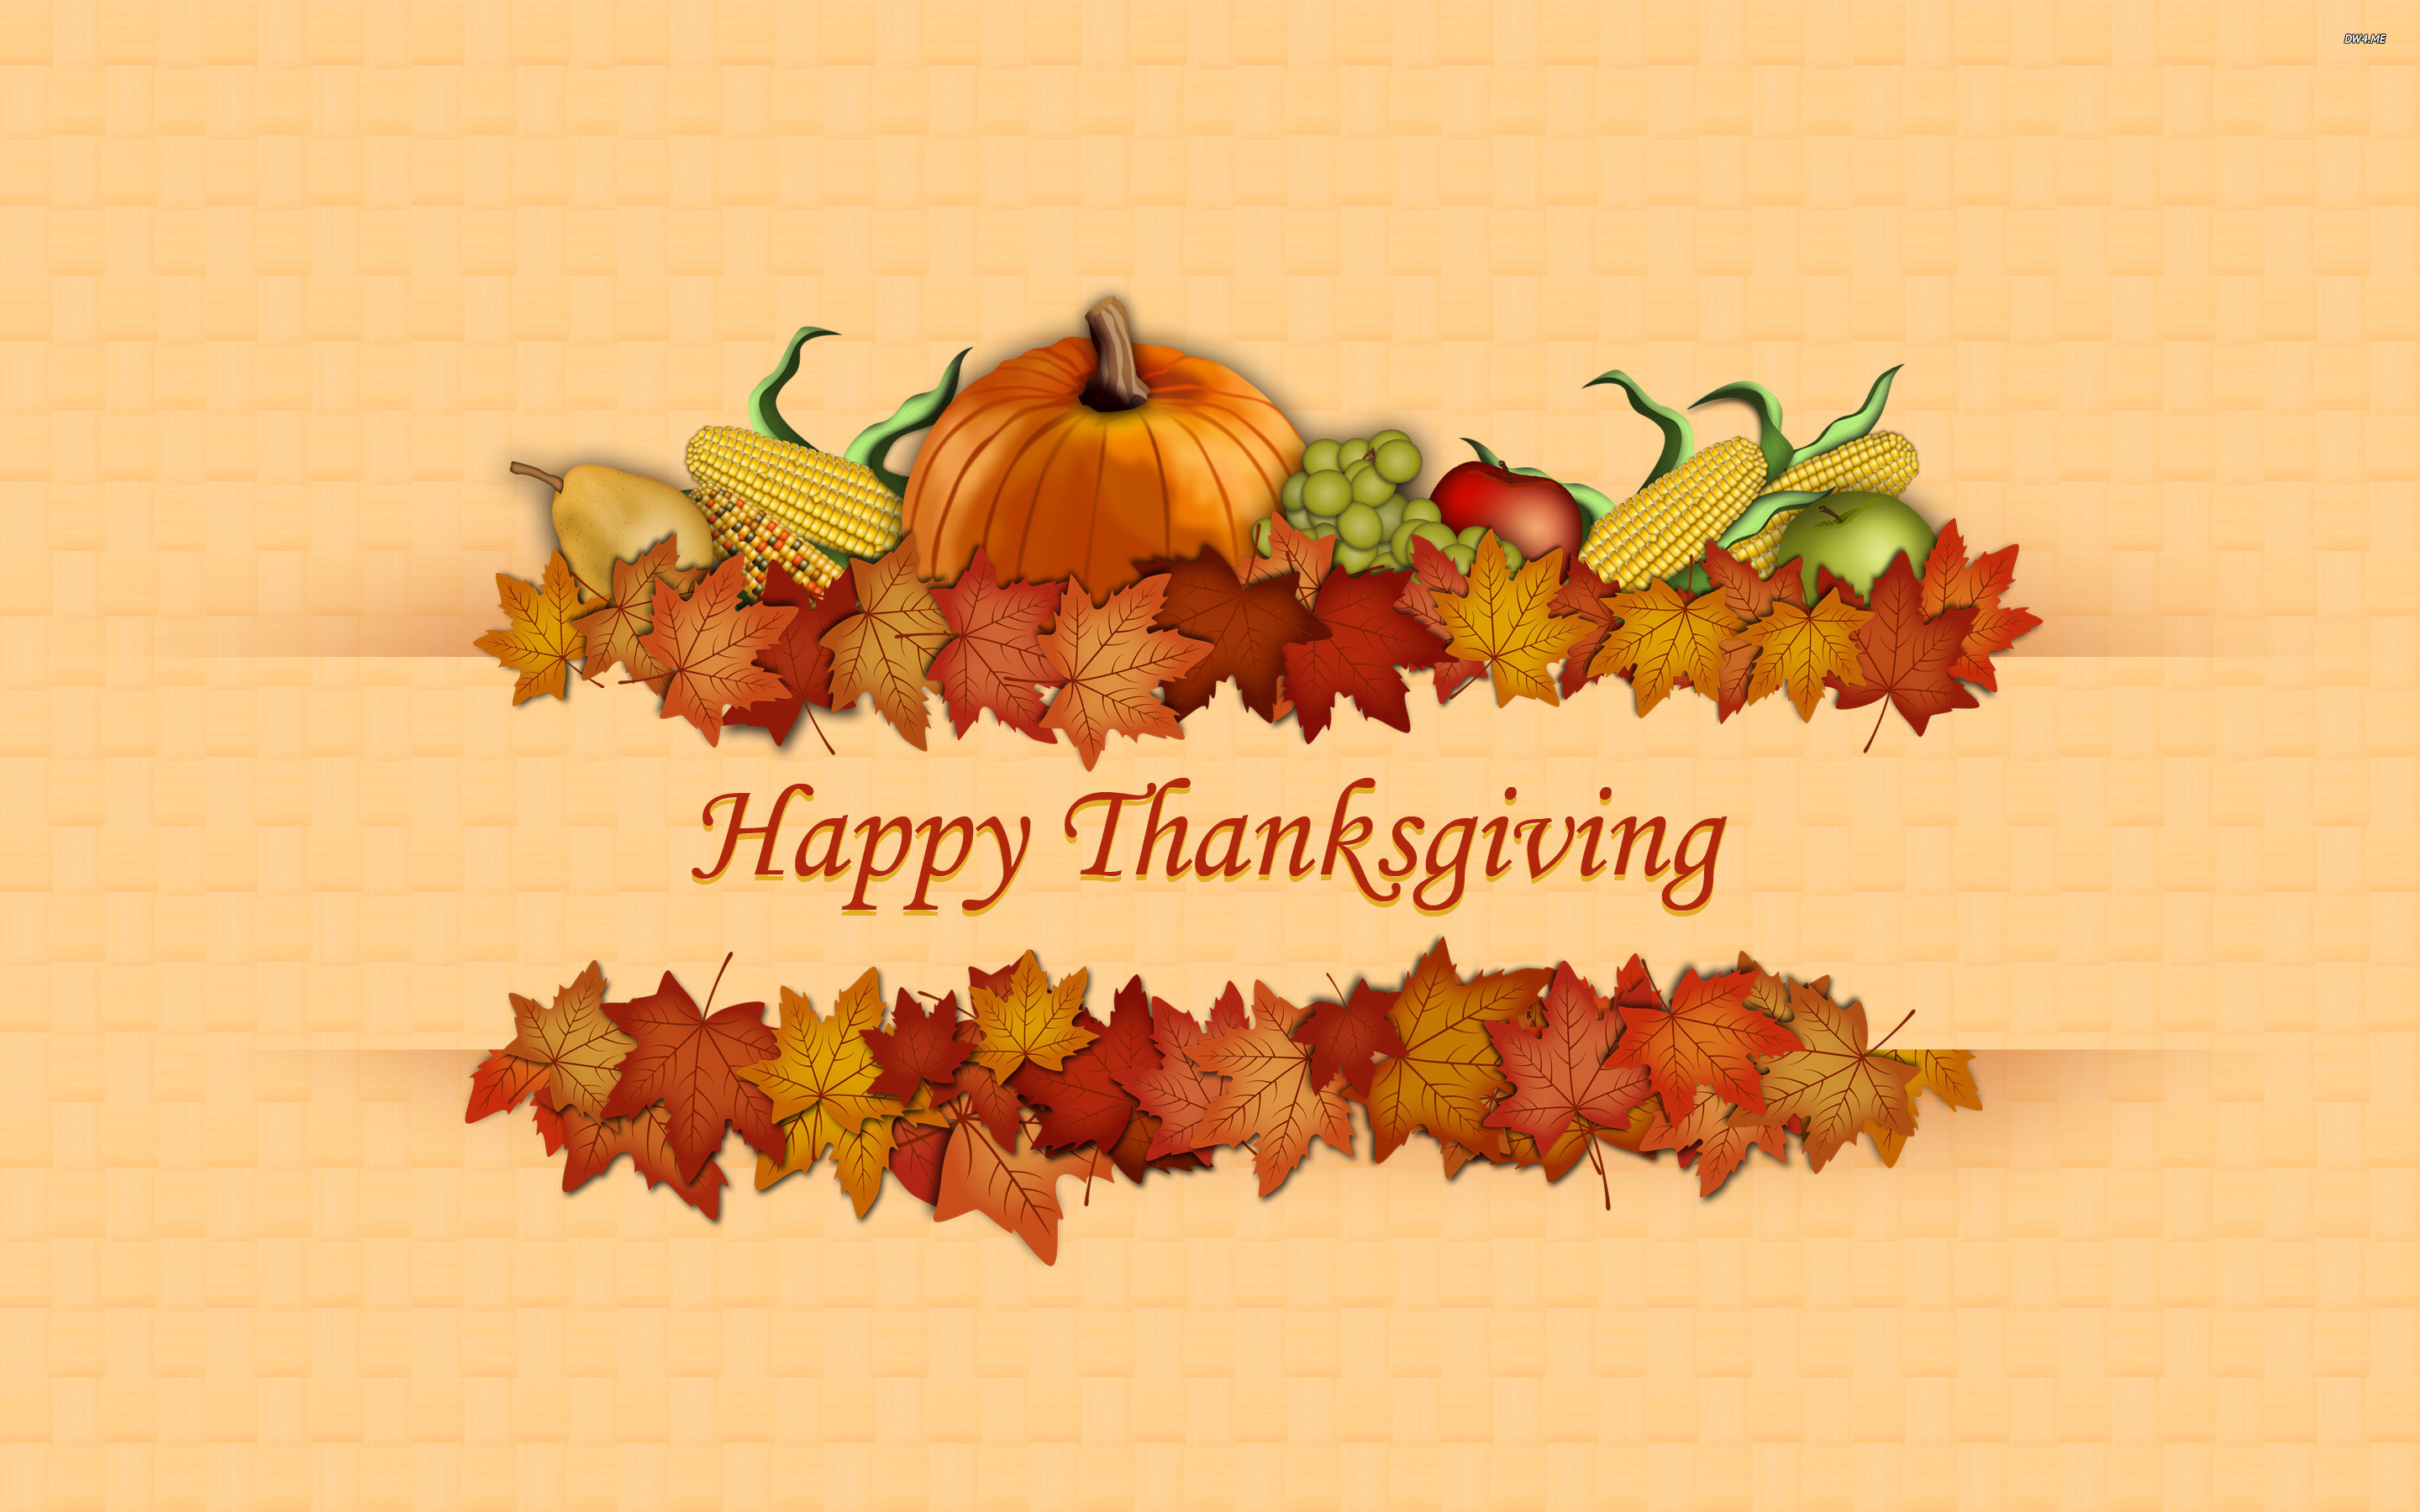 2880x1800 Best Happy Thanksgiving Wallpapers Download Thanksgiving Background | 3D  Wallpapers | Pinterest | Thanksgiving wallpaper and Wallpaper